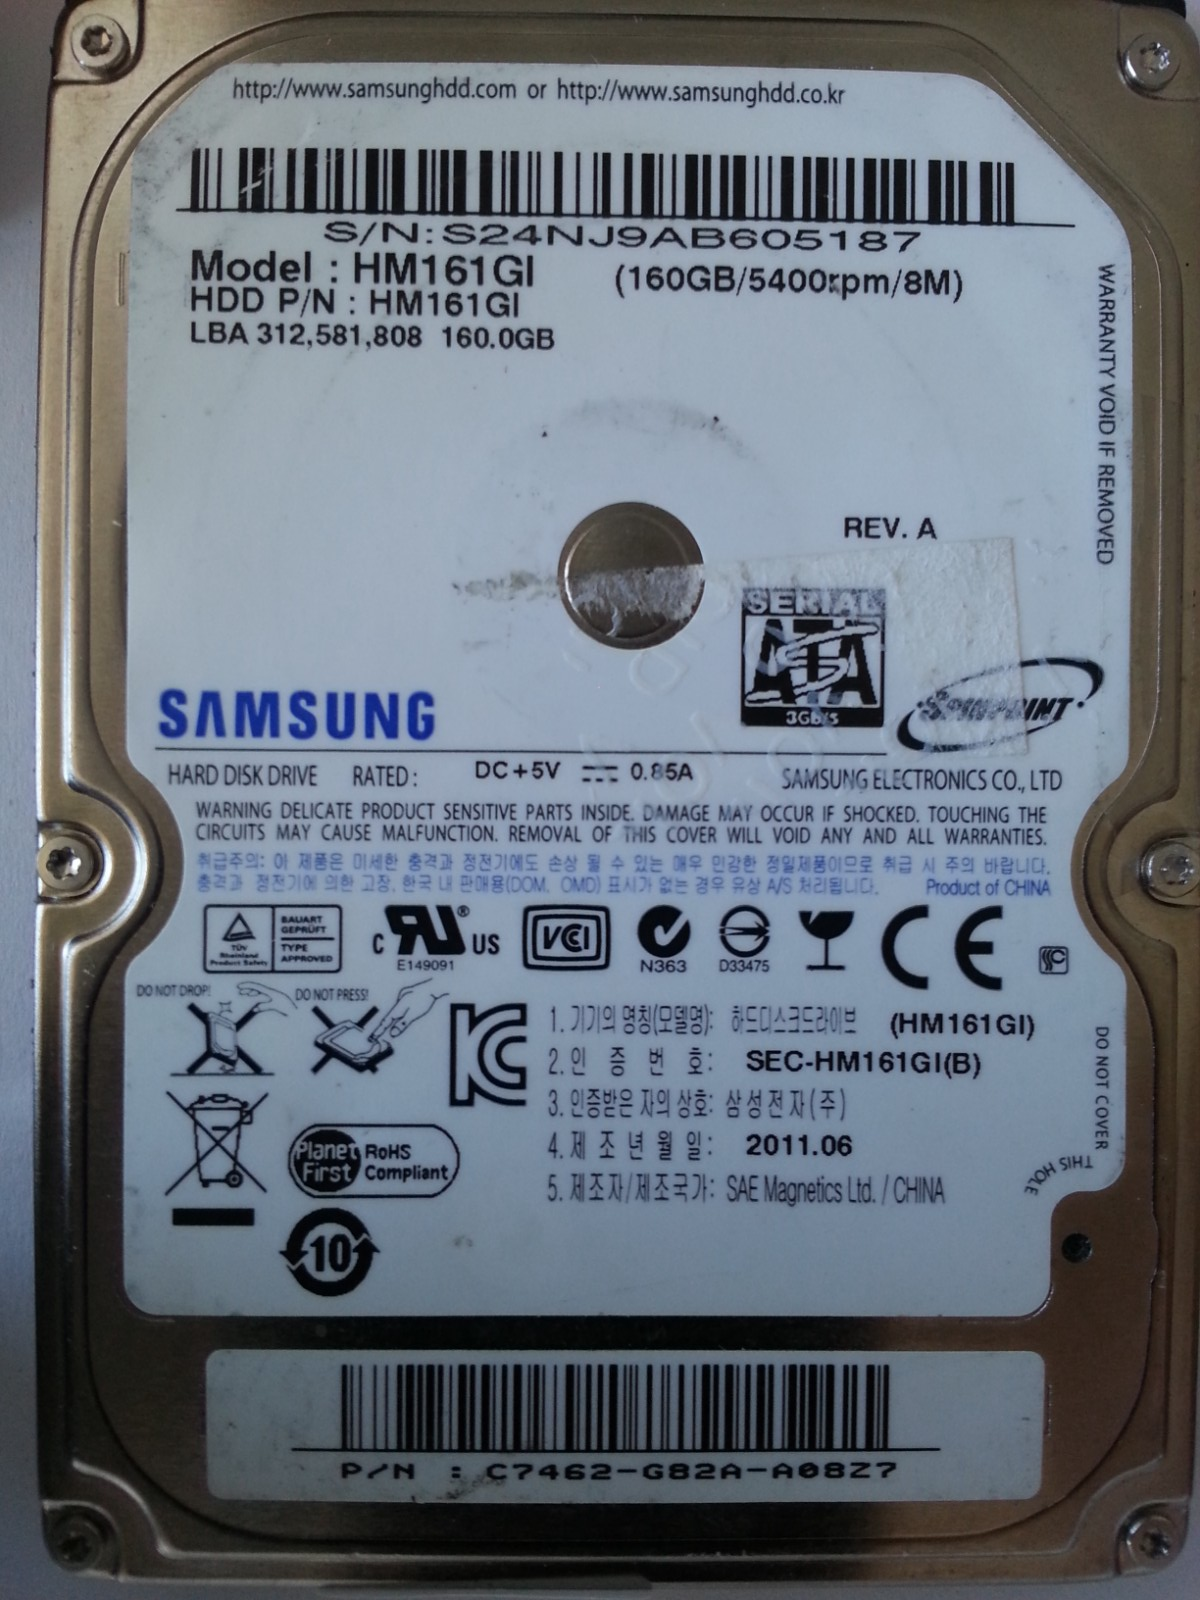 SAMSUNG HM161GI WINDOWS XP DRIVER